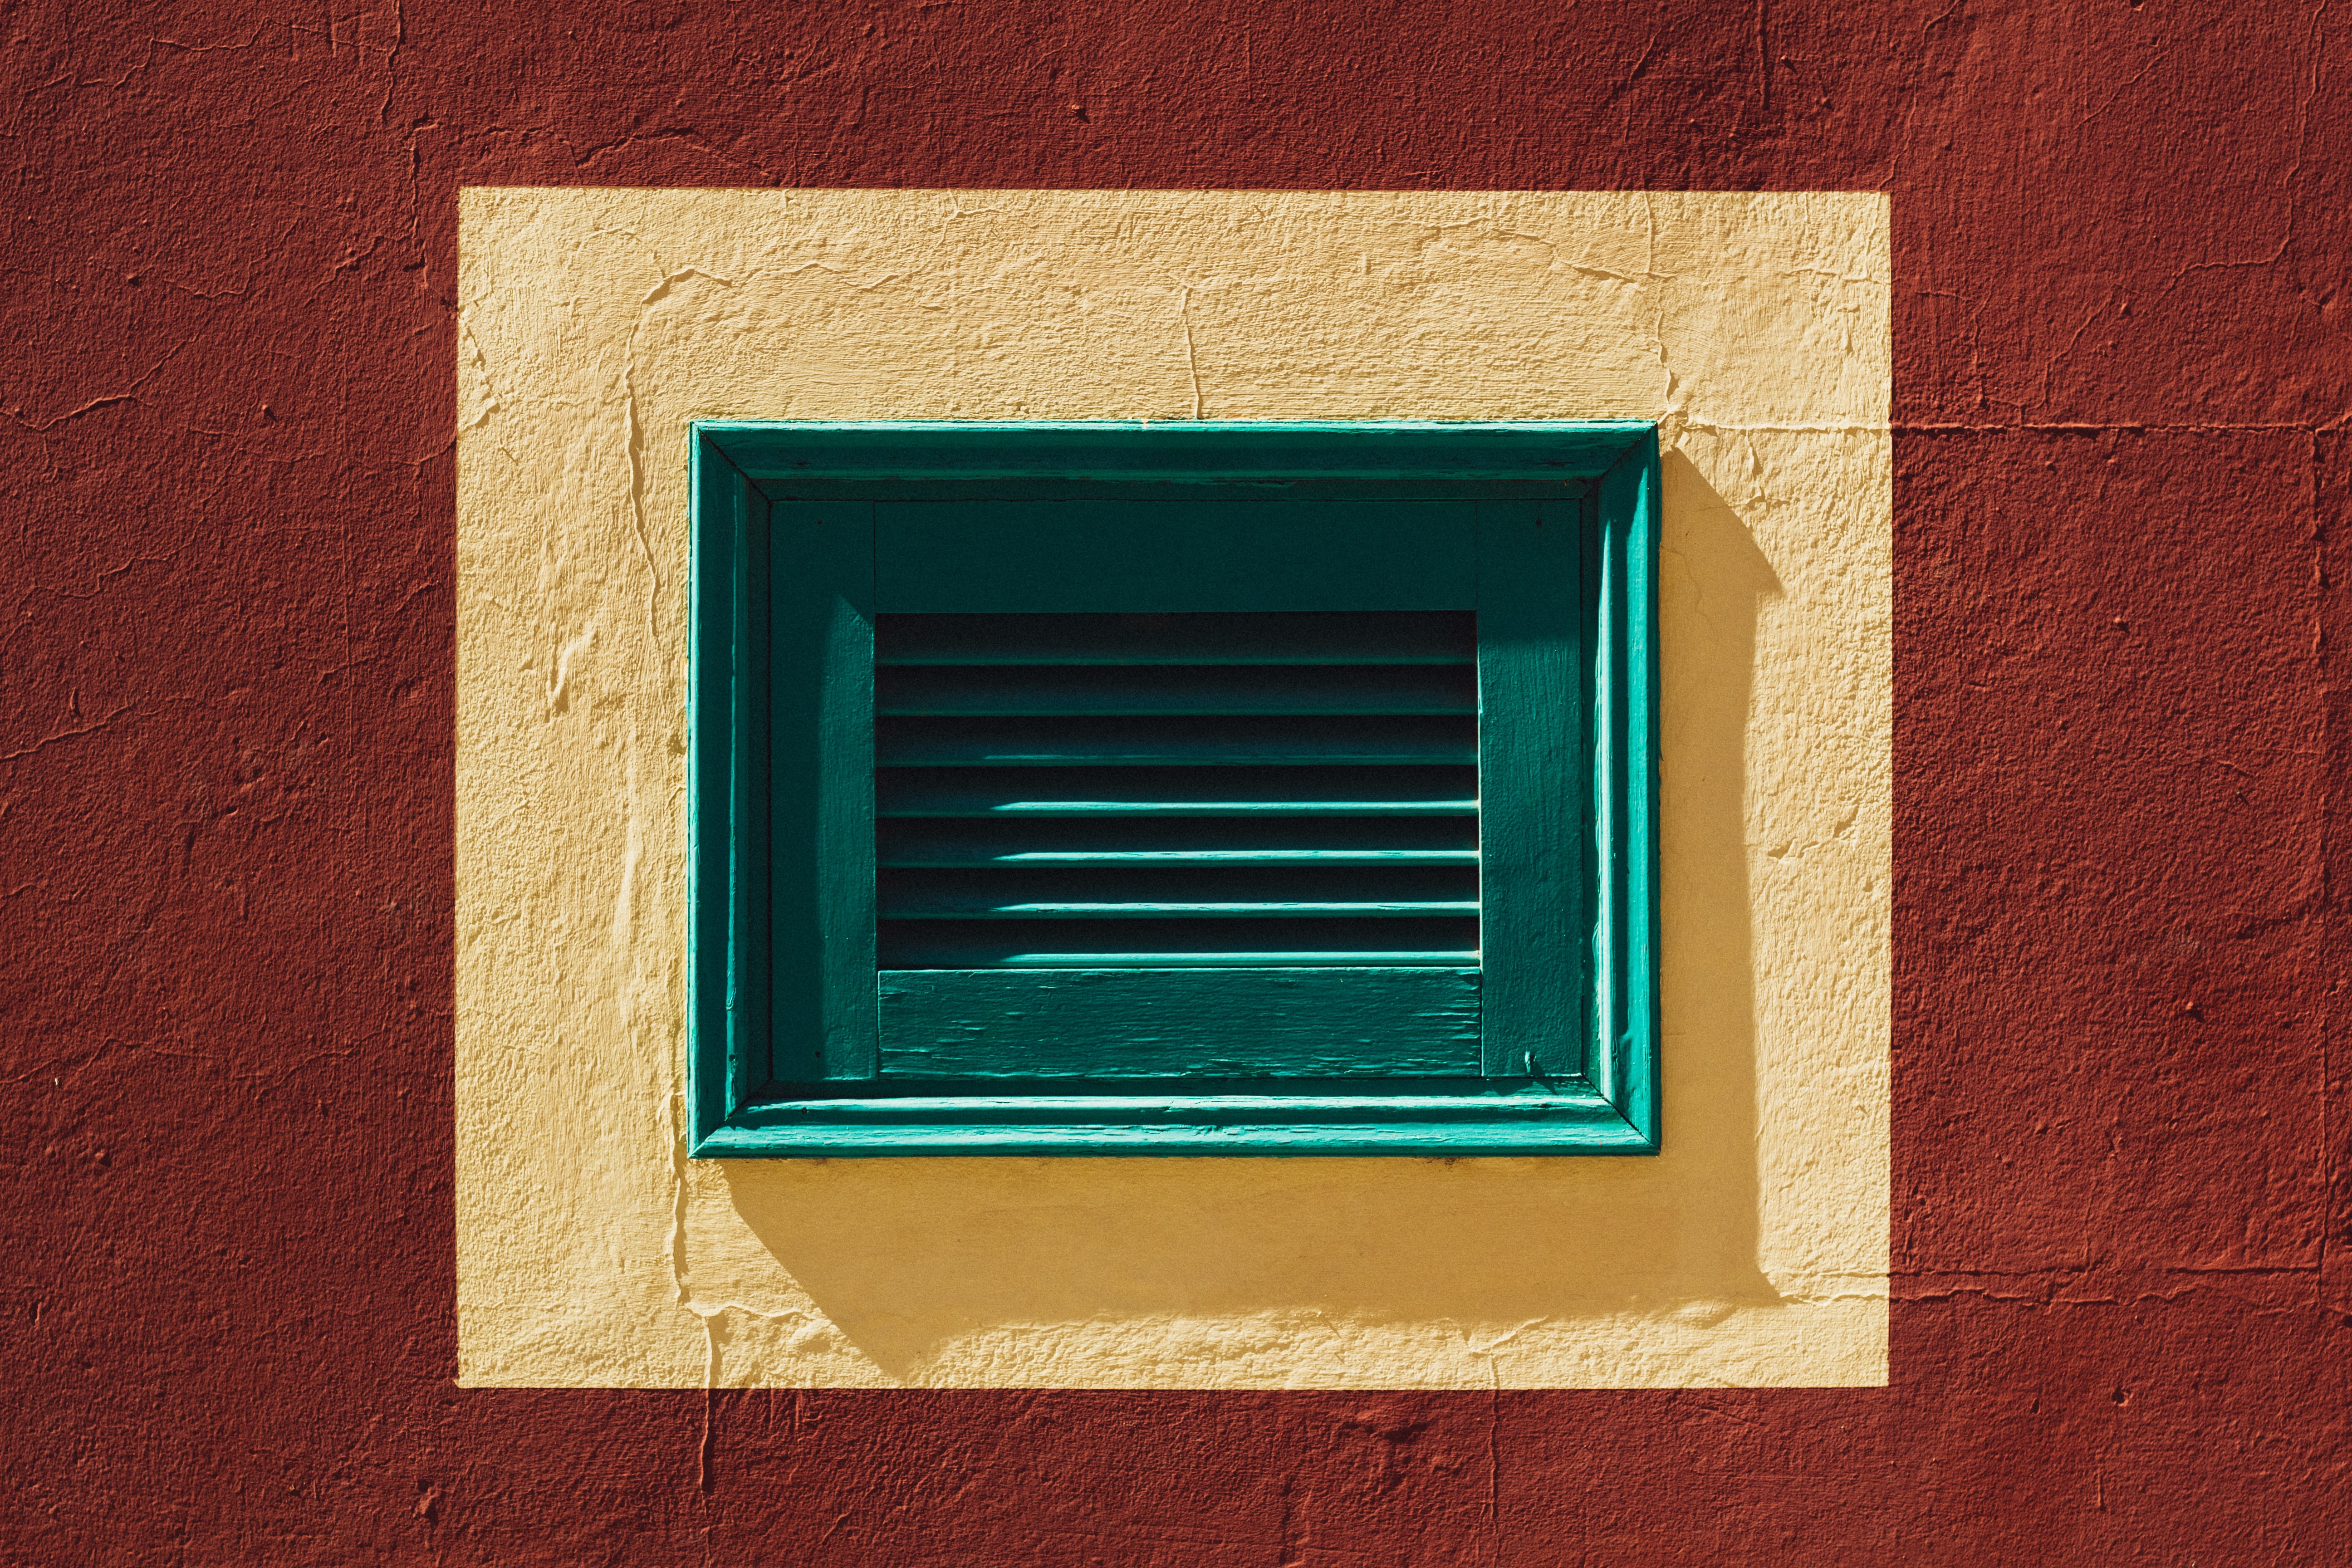 photo of green wooden window during daytime